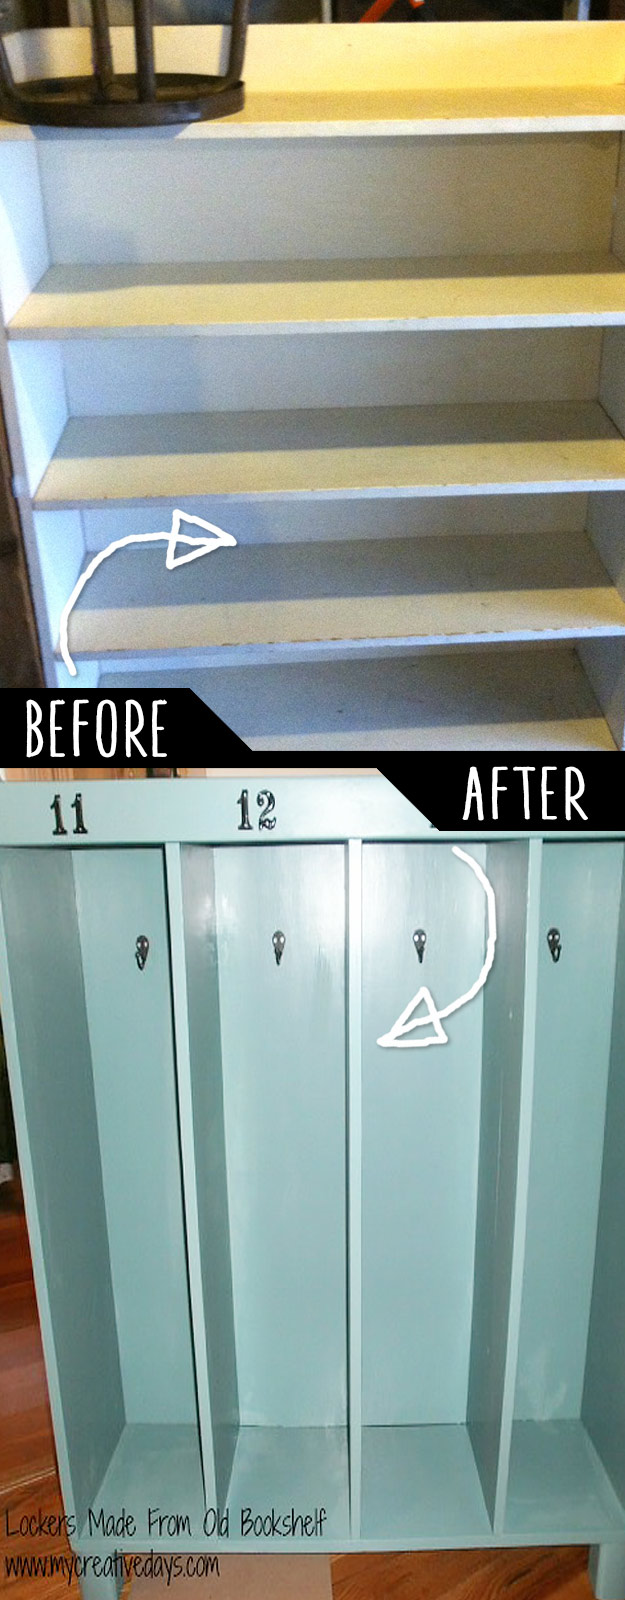 DIY Furniture Hacks   Lockers Made From Old Bookshelf   Cool Ideas for Creative Do It Yourself Furniture Made From Things You Might Not Expect #diy